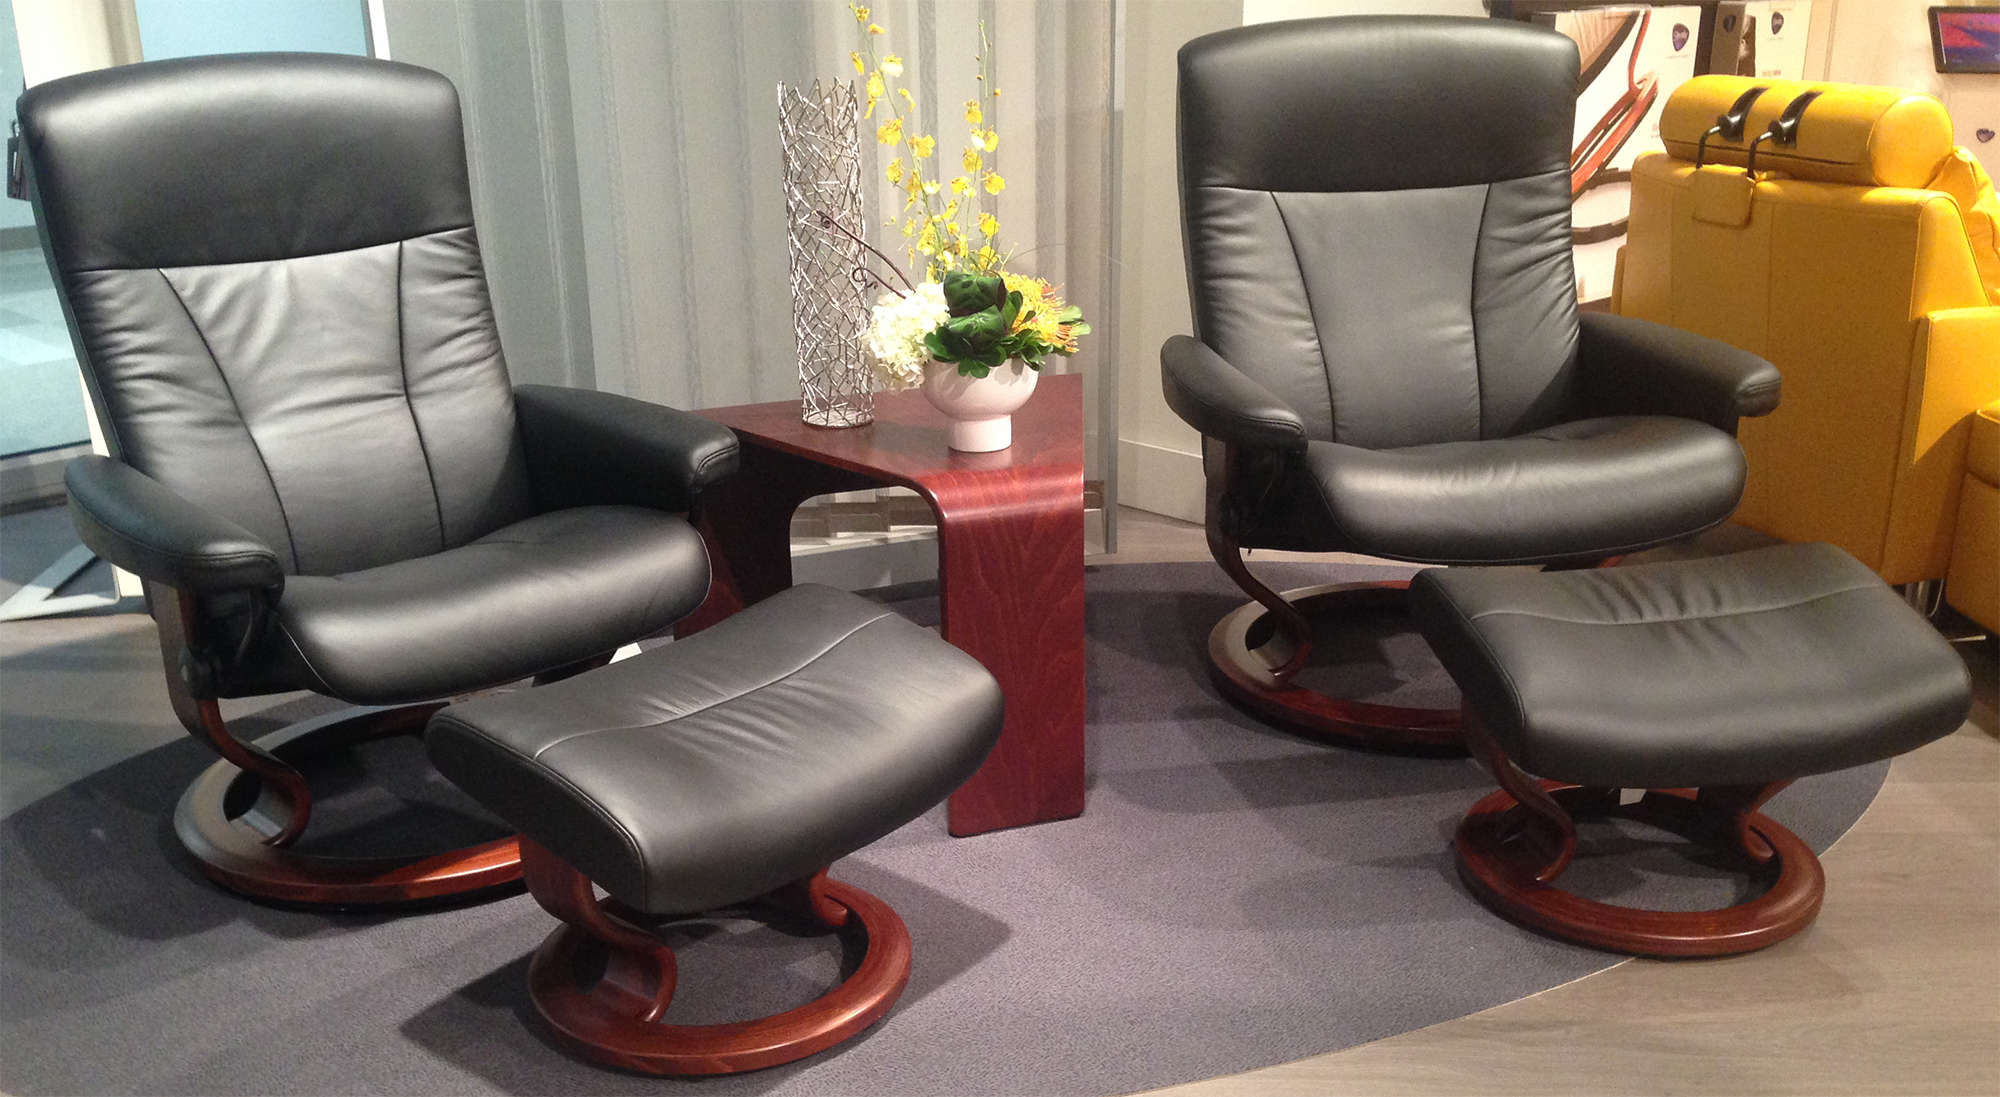 stressless president paloma black leather recliner chair and ottoman